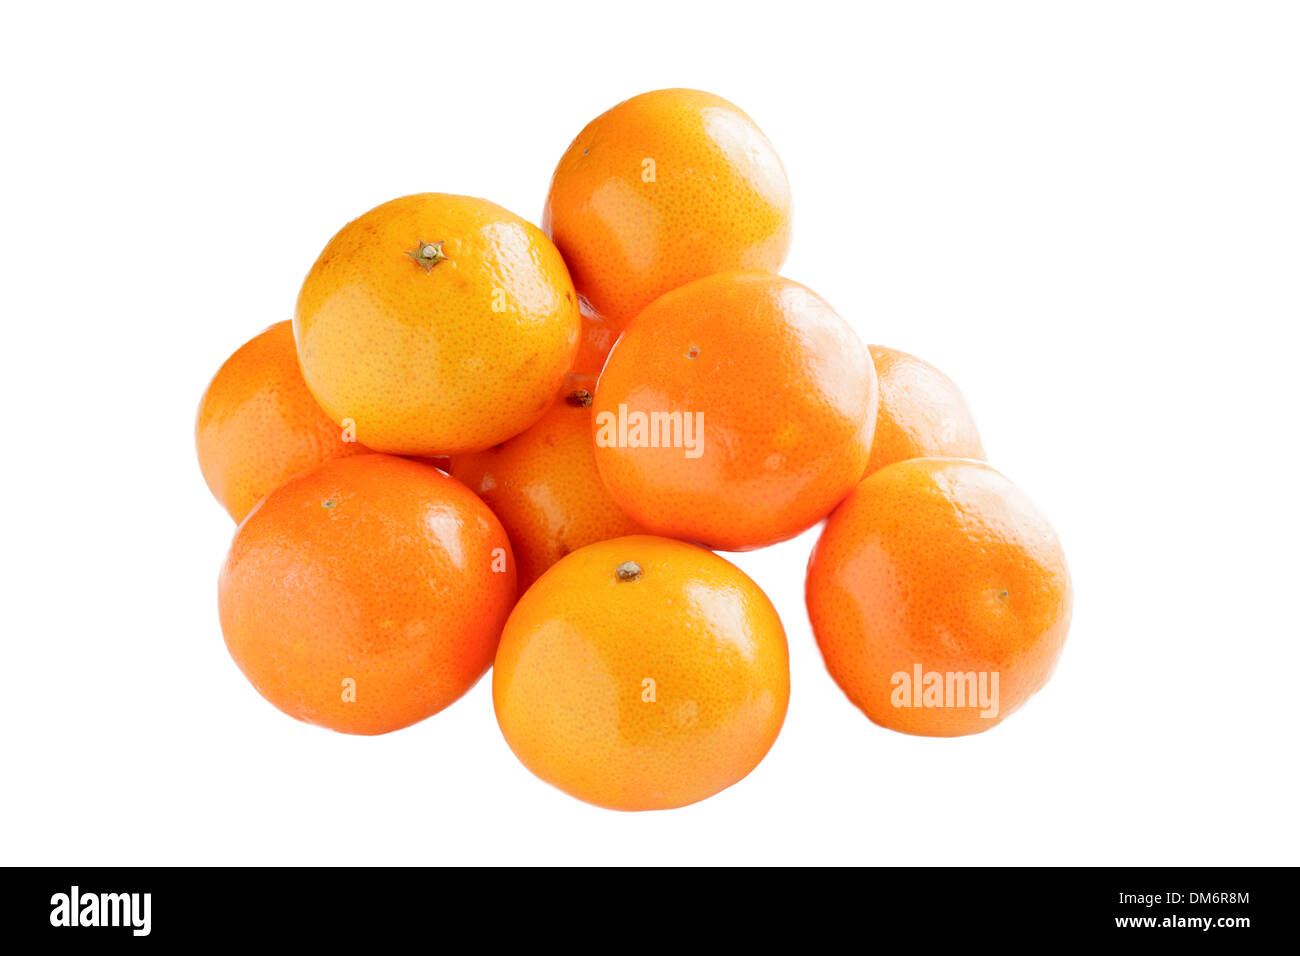 Clementines - Stock Image